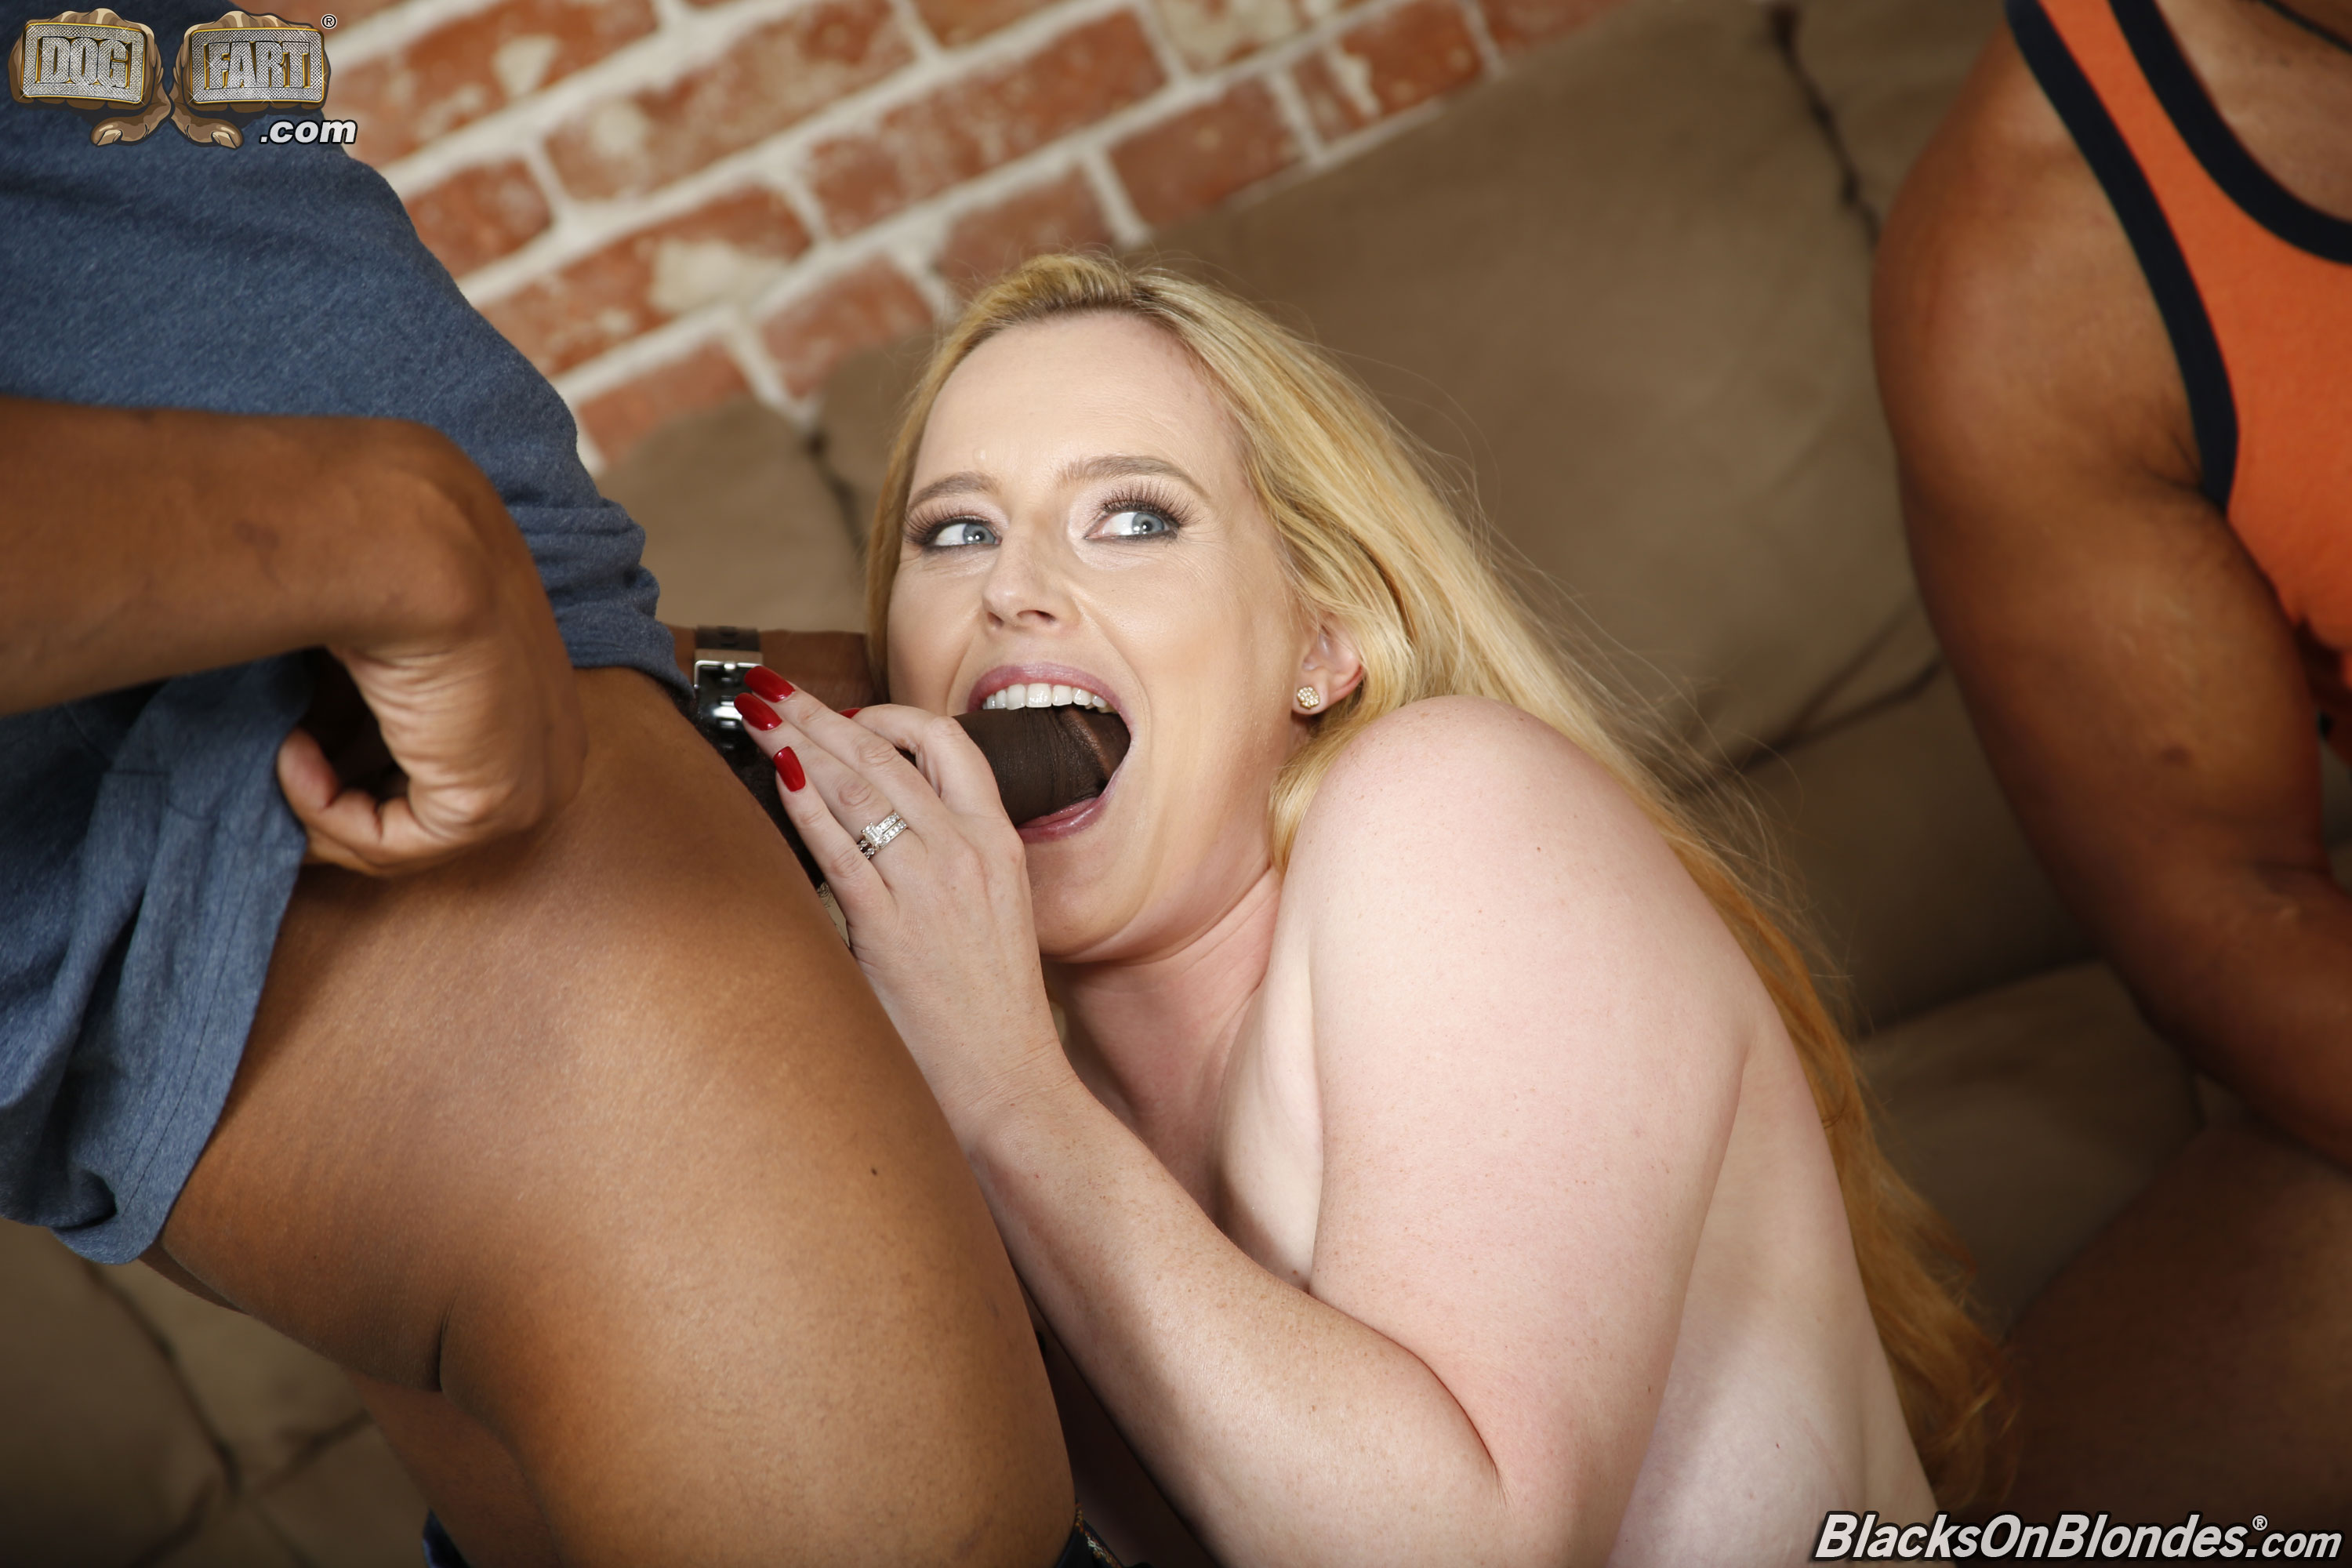 Blacks on blonde dogfart gallery